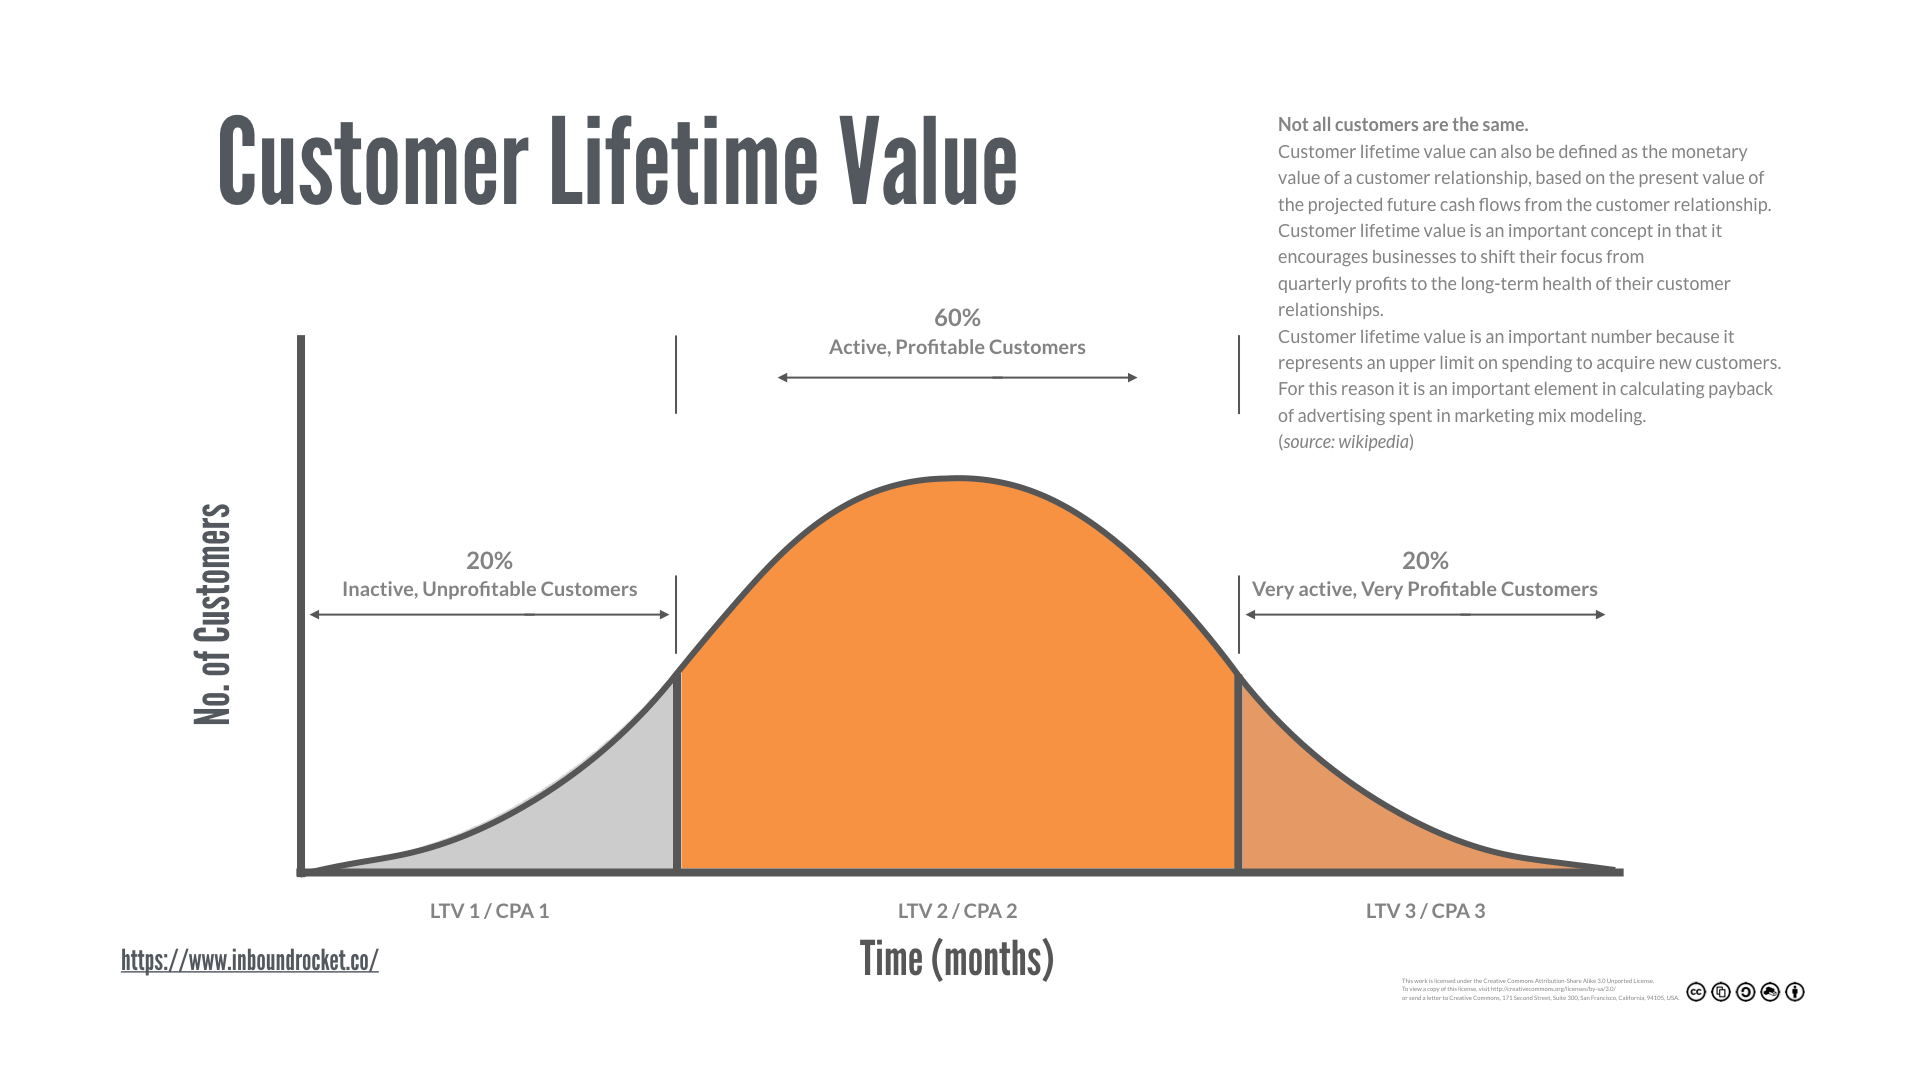 Customer Lifetime Value - not all customers are the same